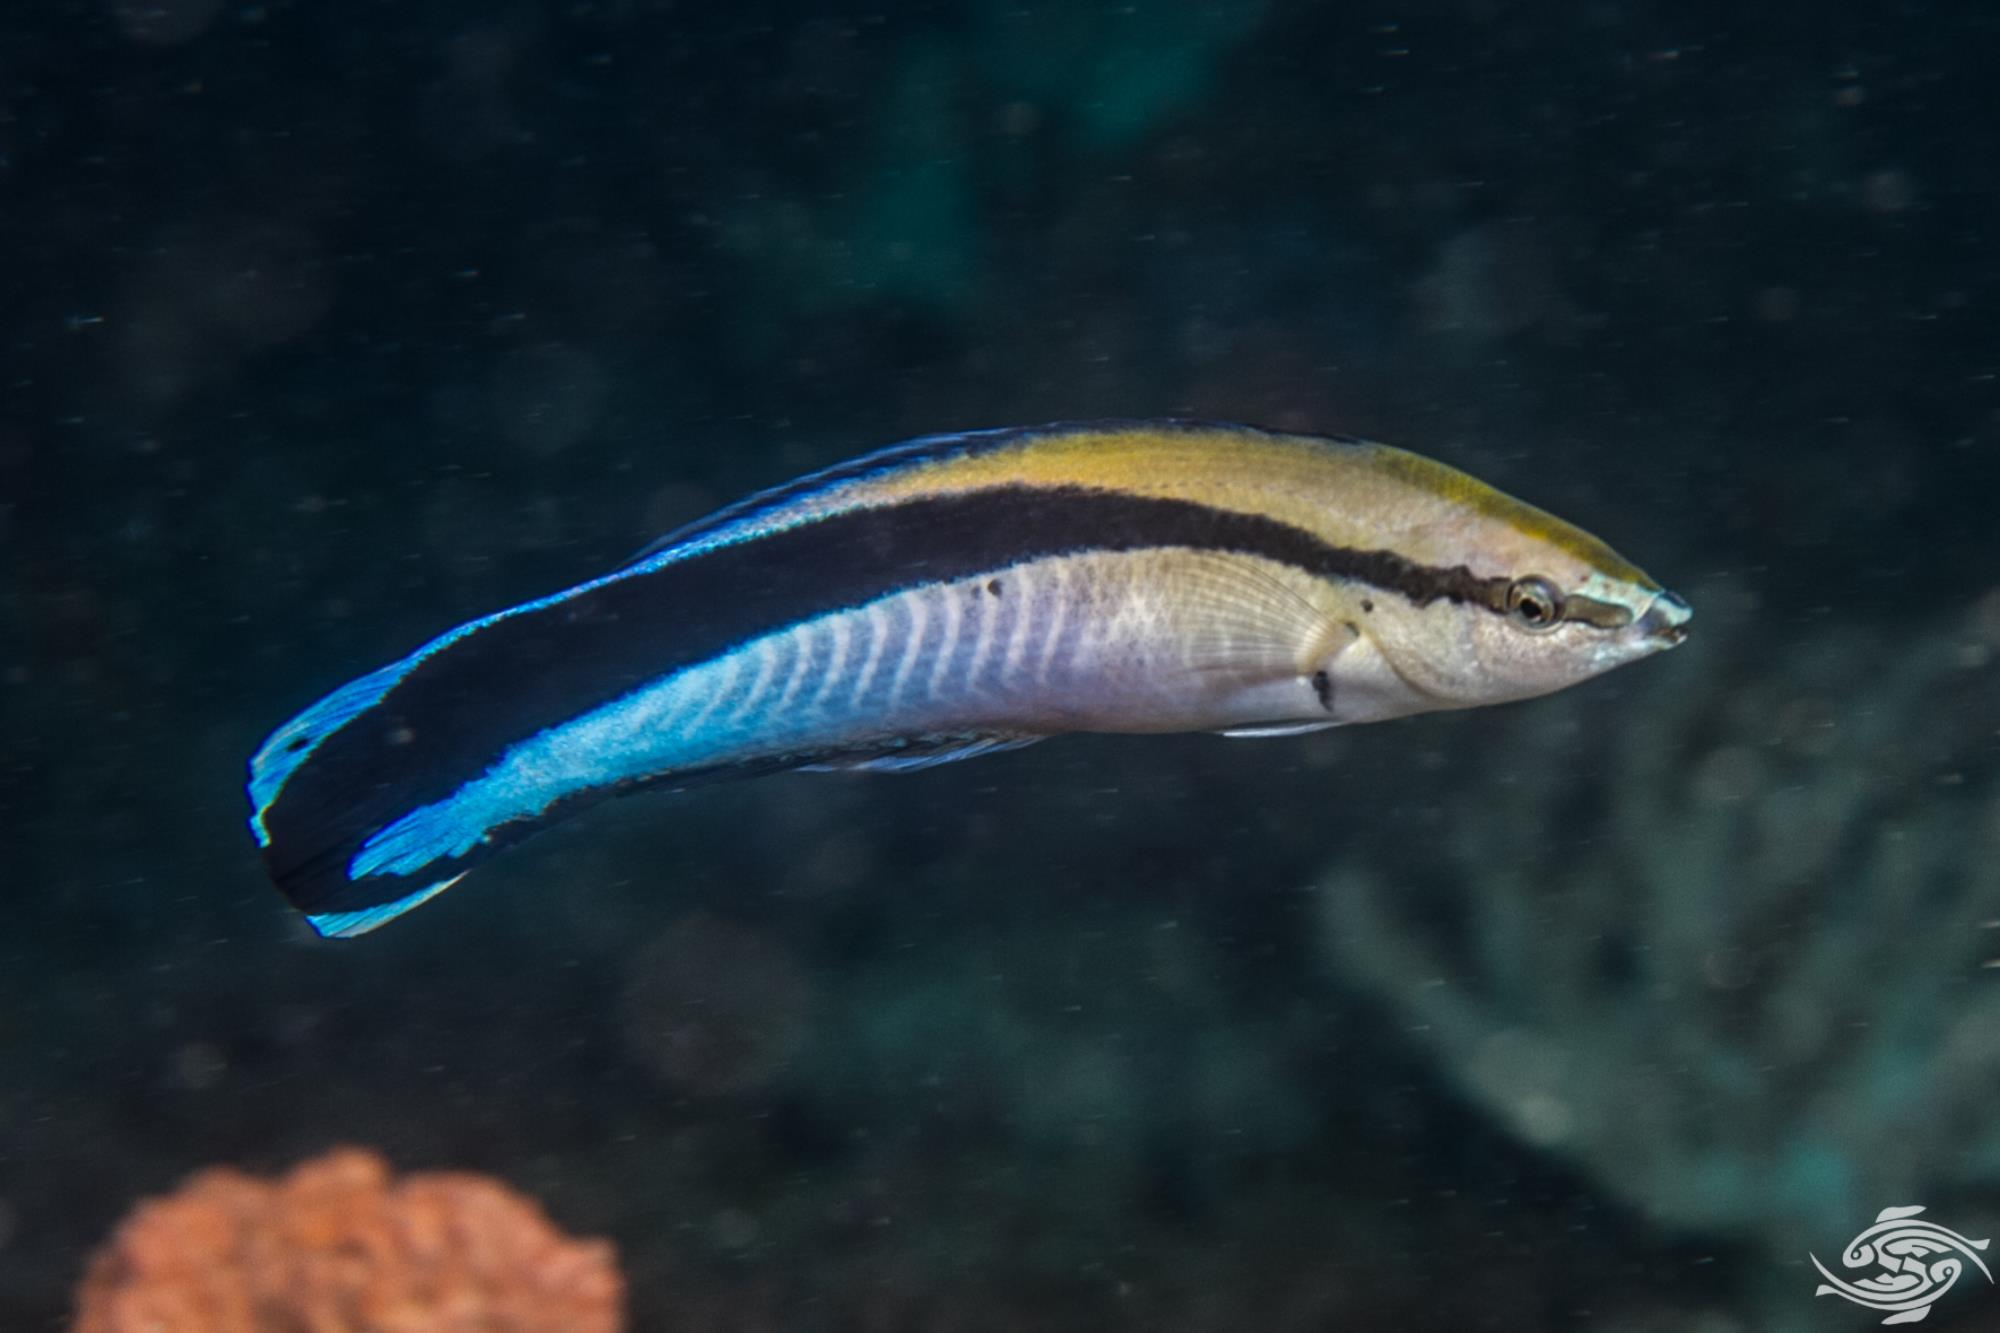 Cleaner Wrasse (Labroides dimidiatus) also known as the Blue Streak Cleaner Wrasse